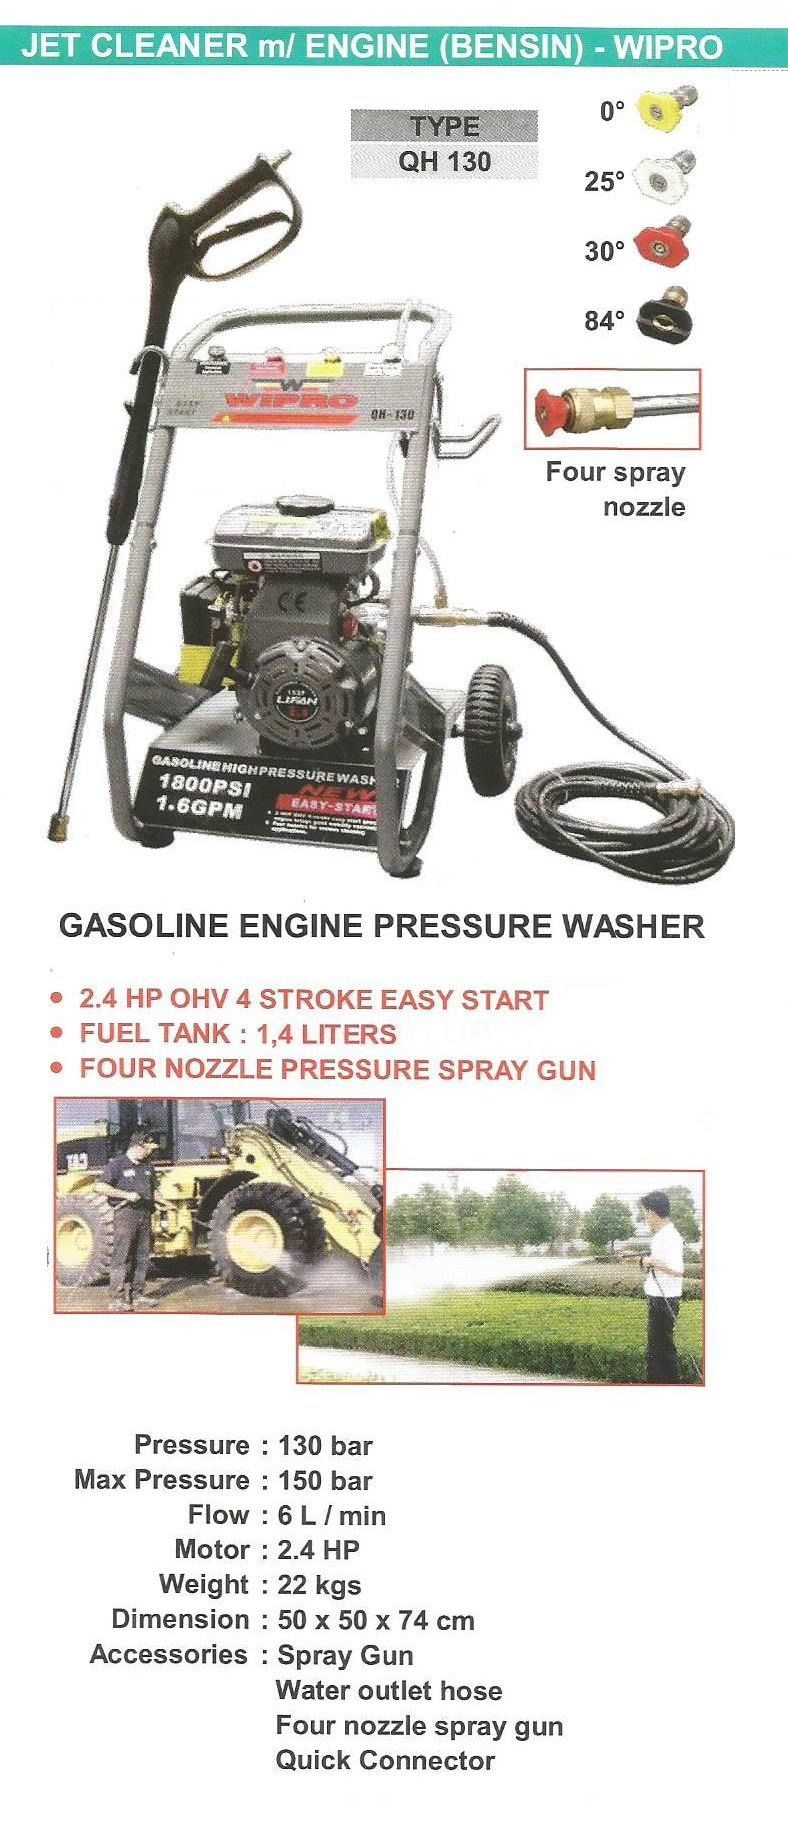 Gasoline Engine Pressure Washer Jet Cleaner Mesin Bensin